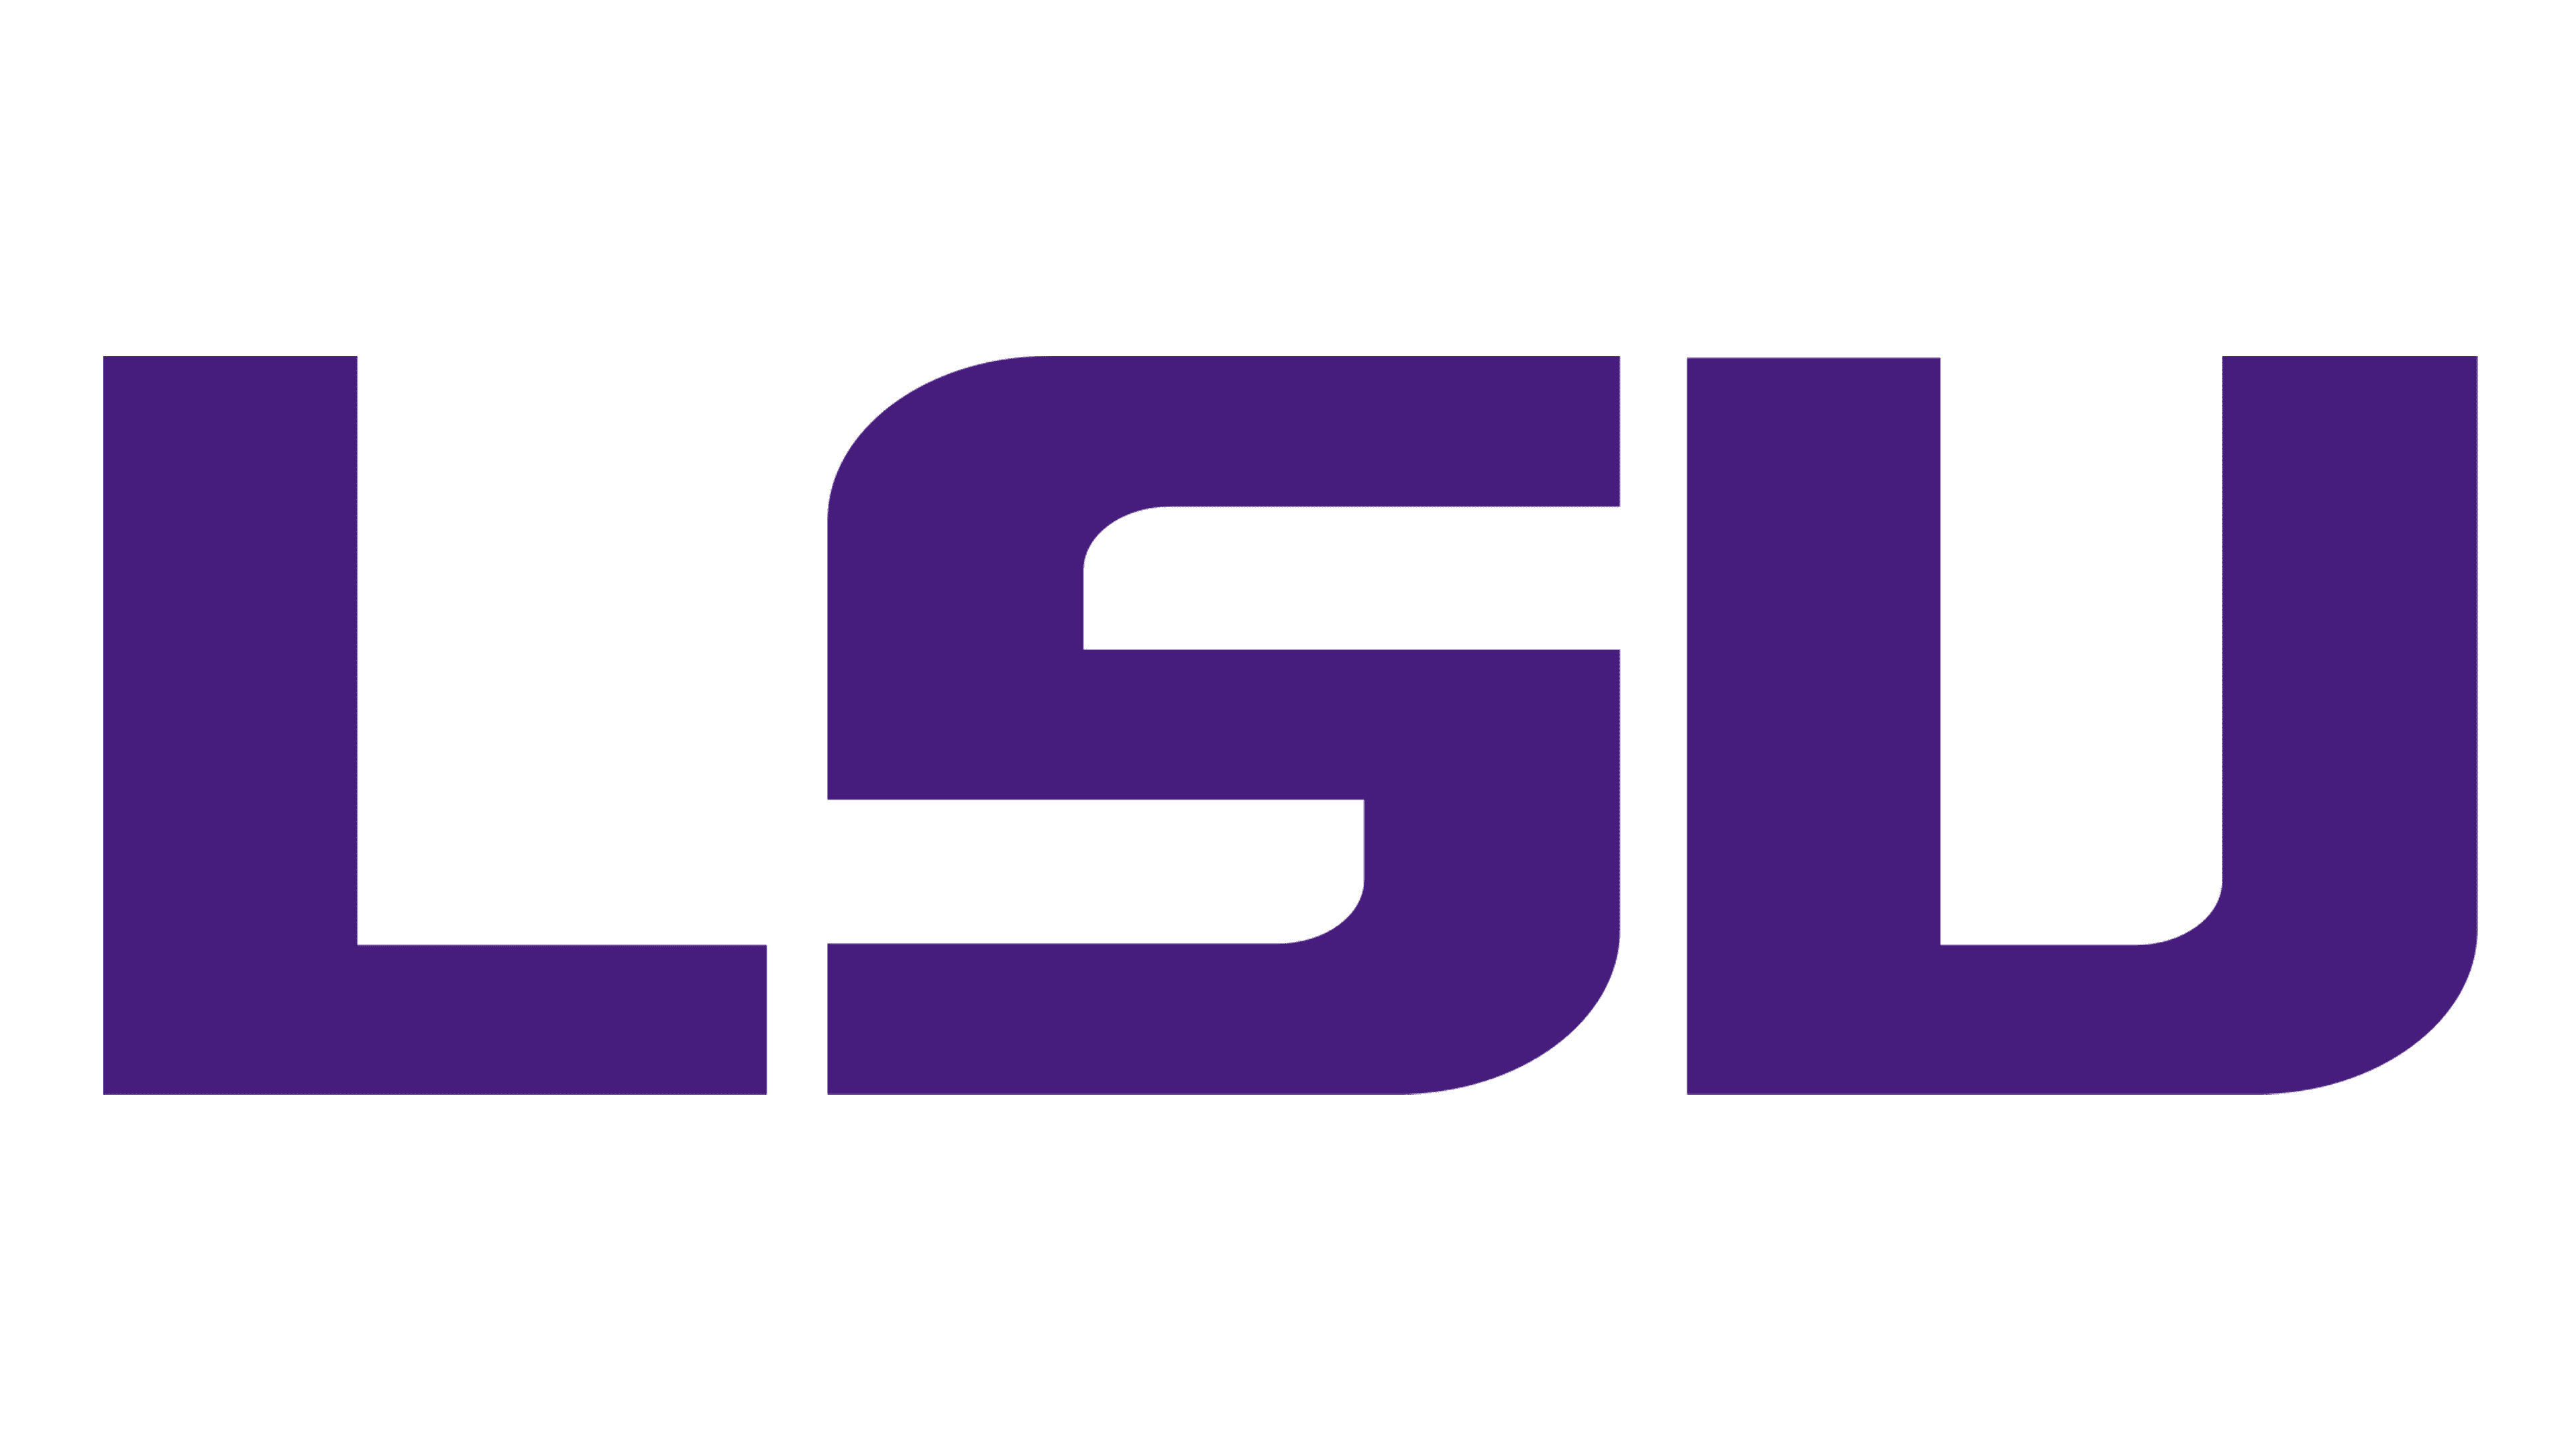 Louisiana State University's logo and symbol, meaning, history, PNG